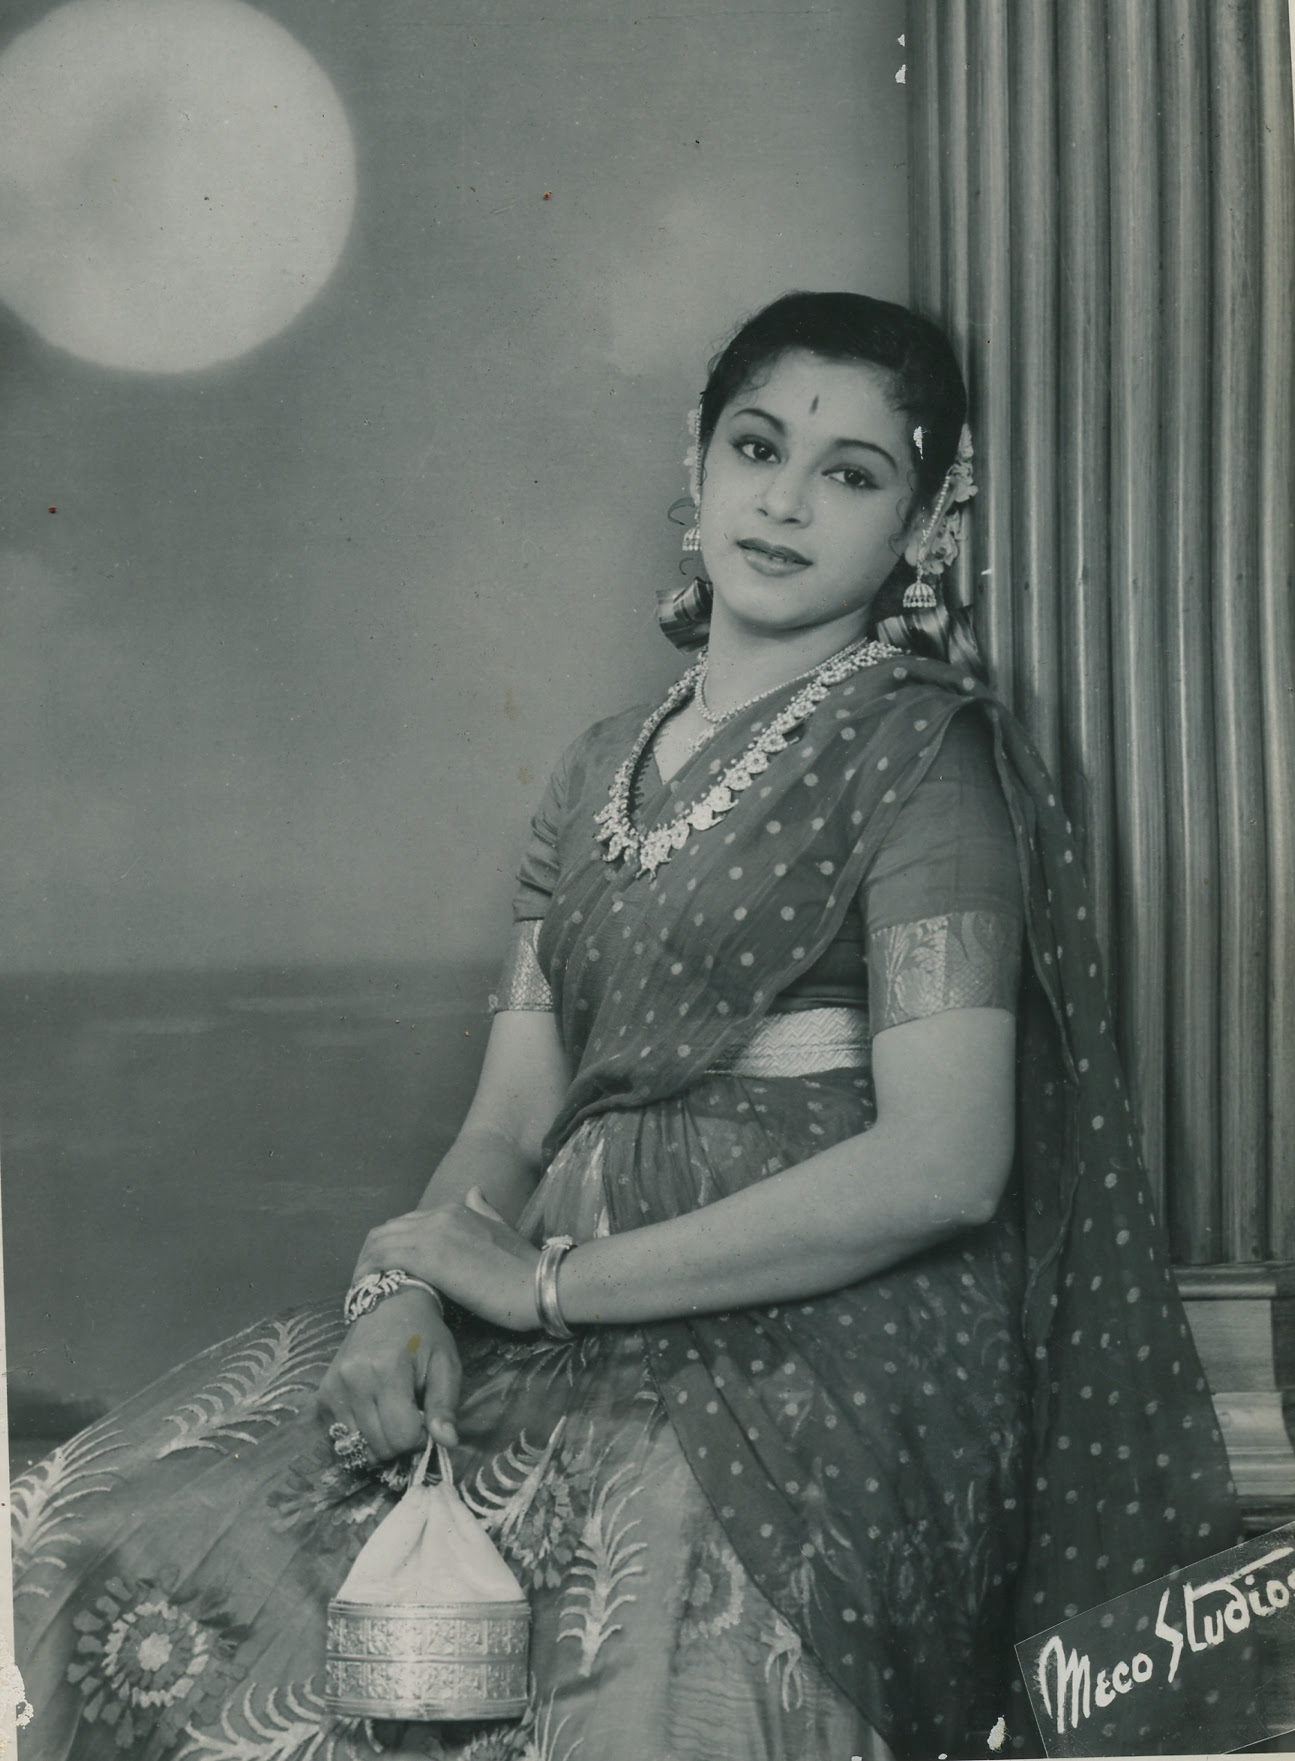 http://www.betsywoodman.com/wordpress/wp-content/uploads/2013/03/Ragini-formal-portrait-Meco-2.jpg